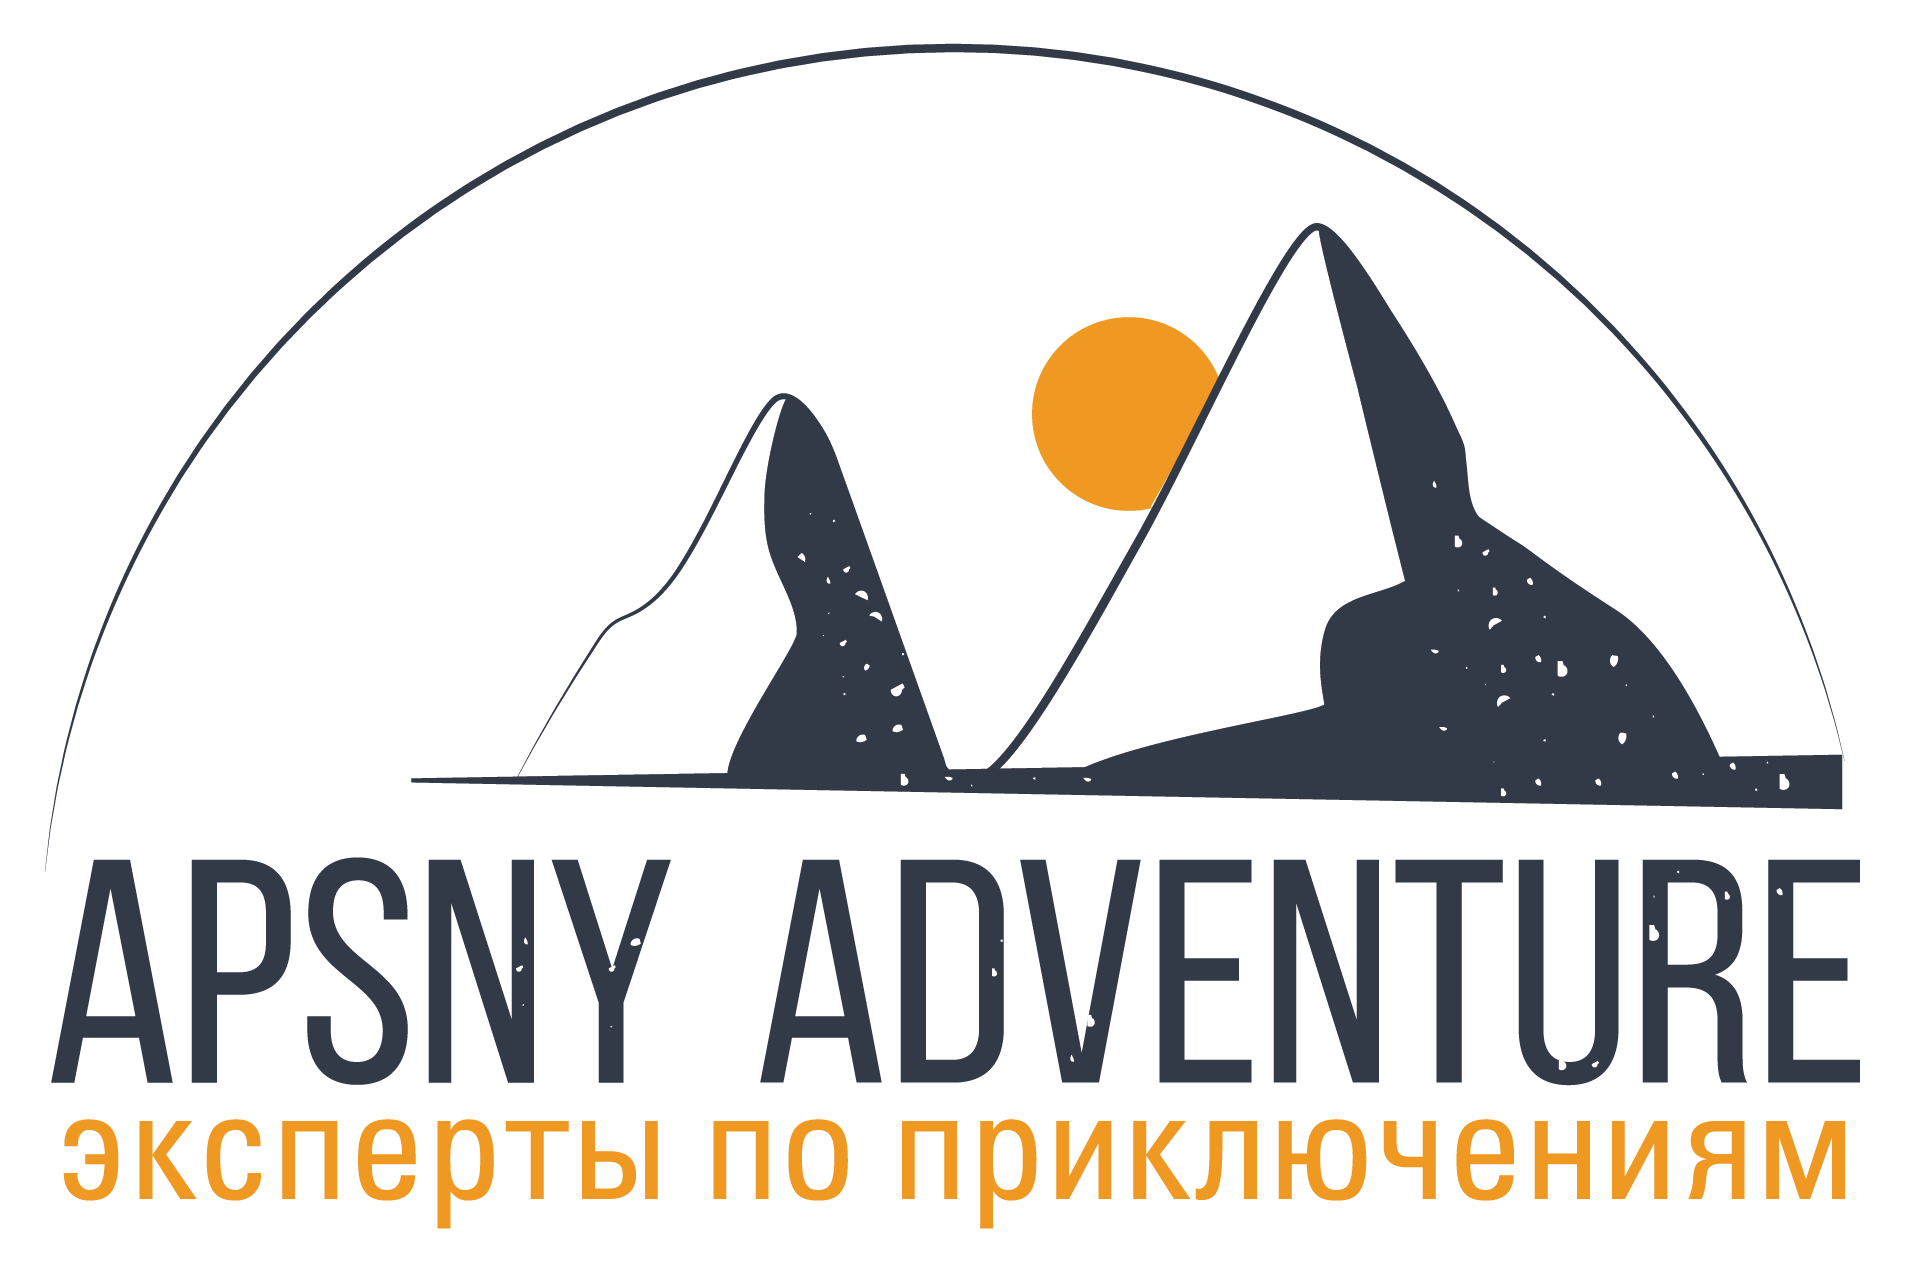 Apsny Adventure